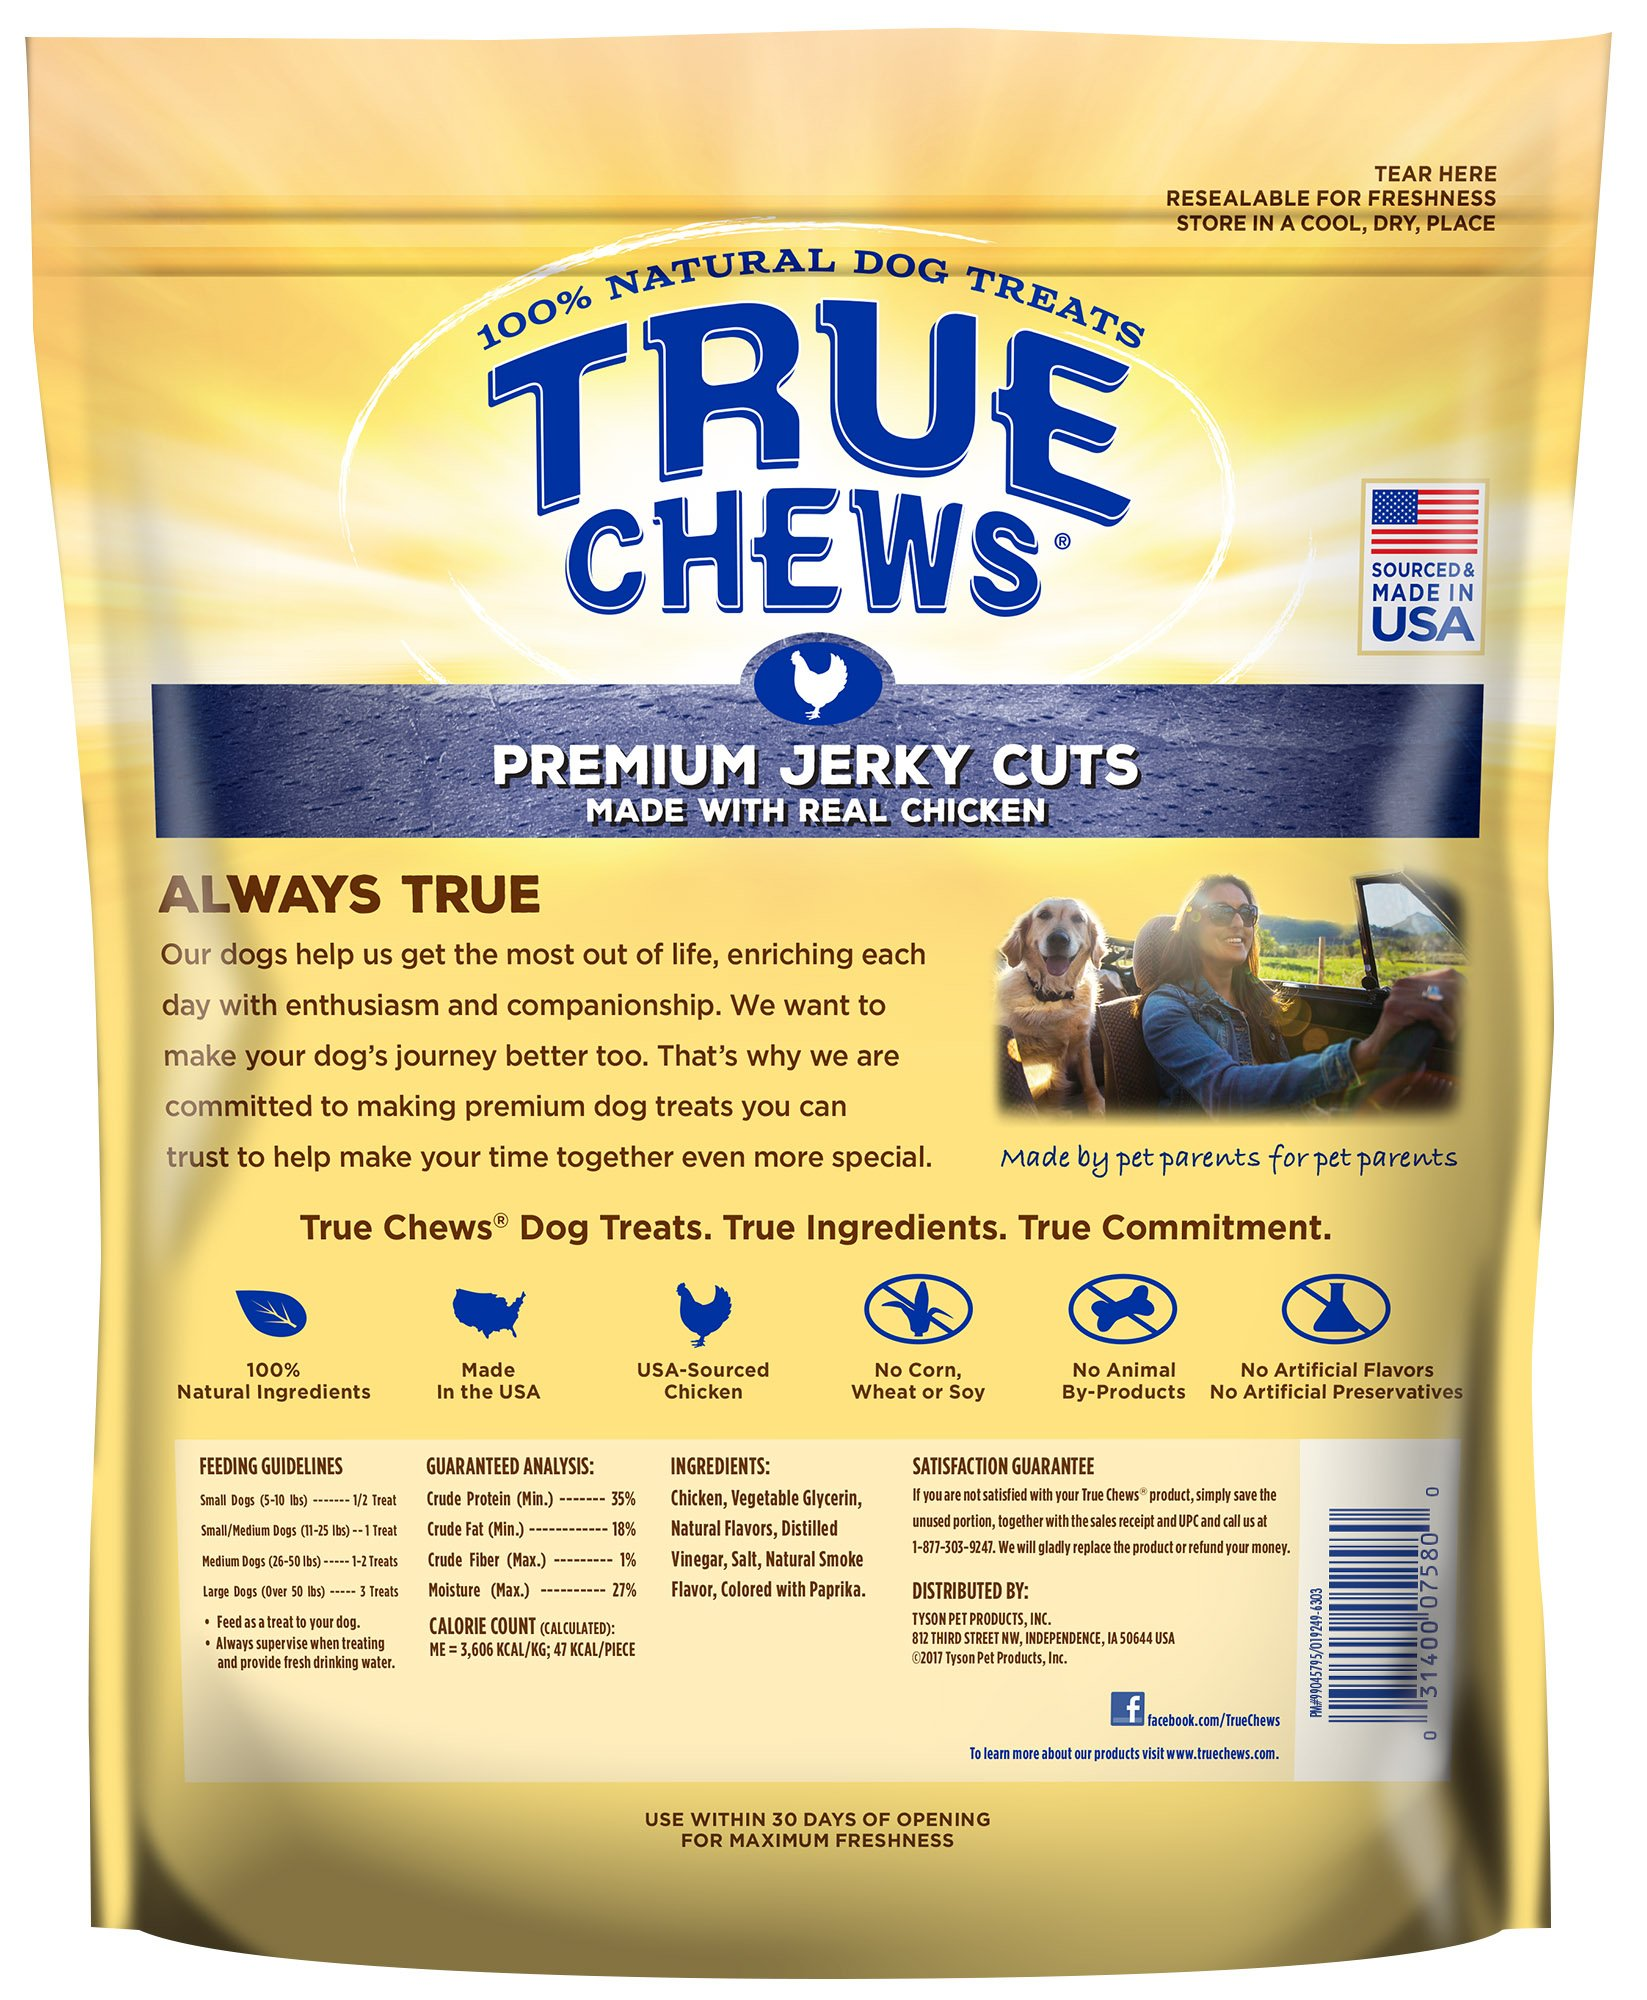 True Chews Tyson Pet Products Premium Jerky Cuts 12 Ounce Chicken by True Chews (Image #4)